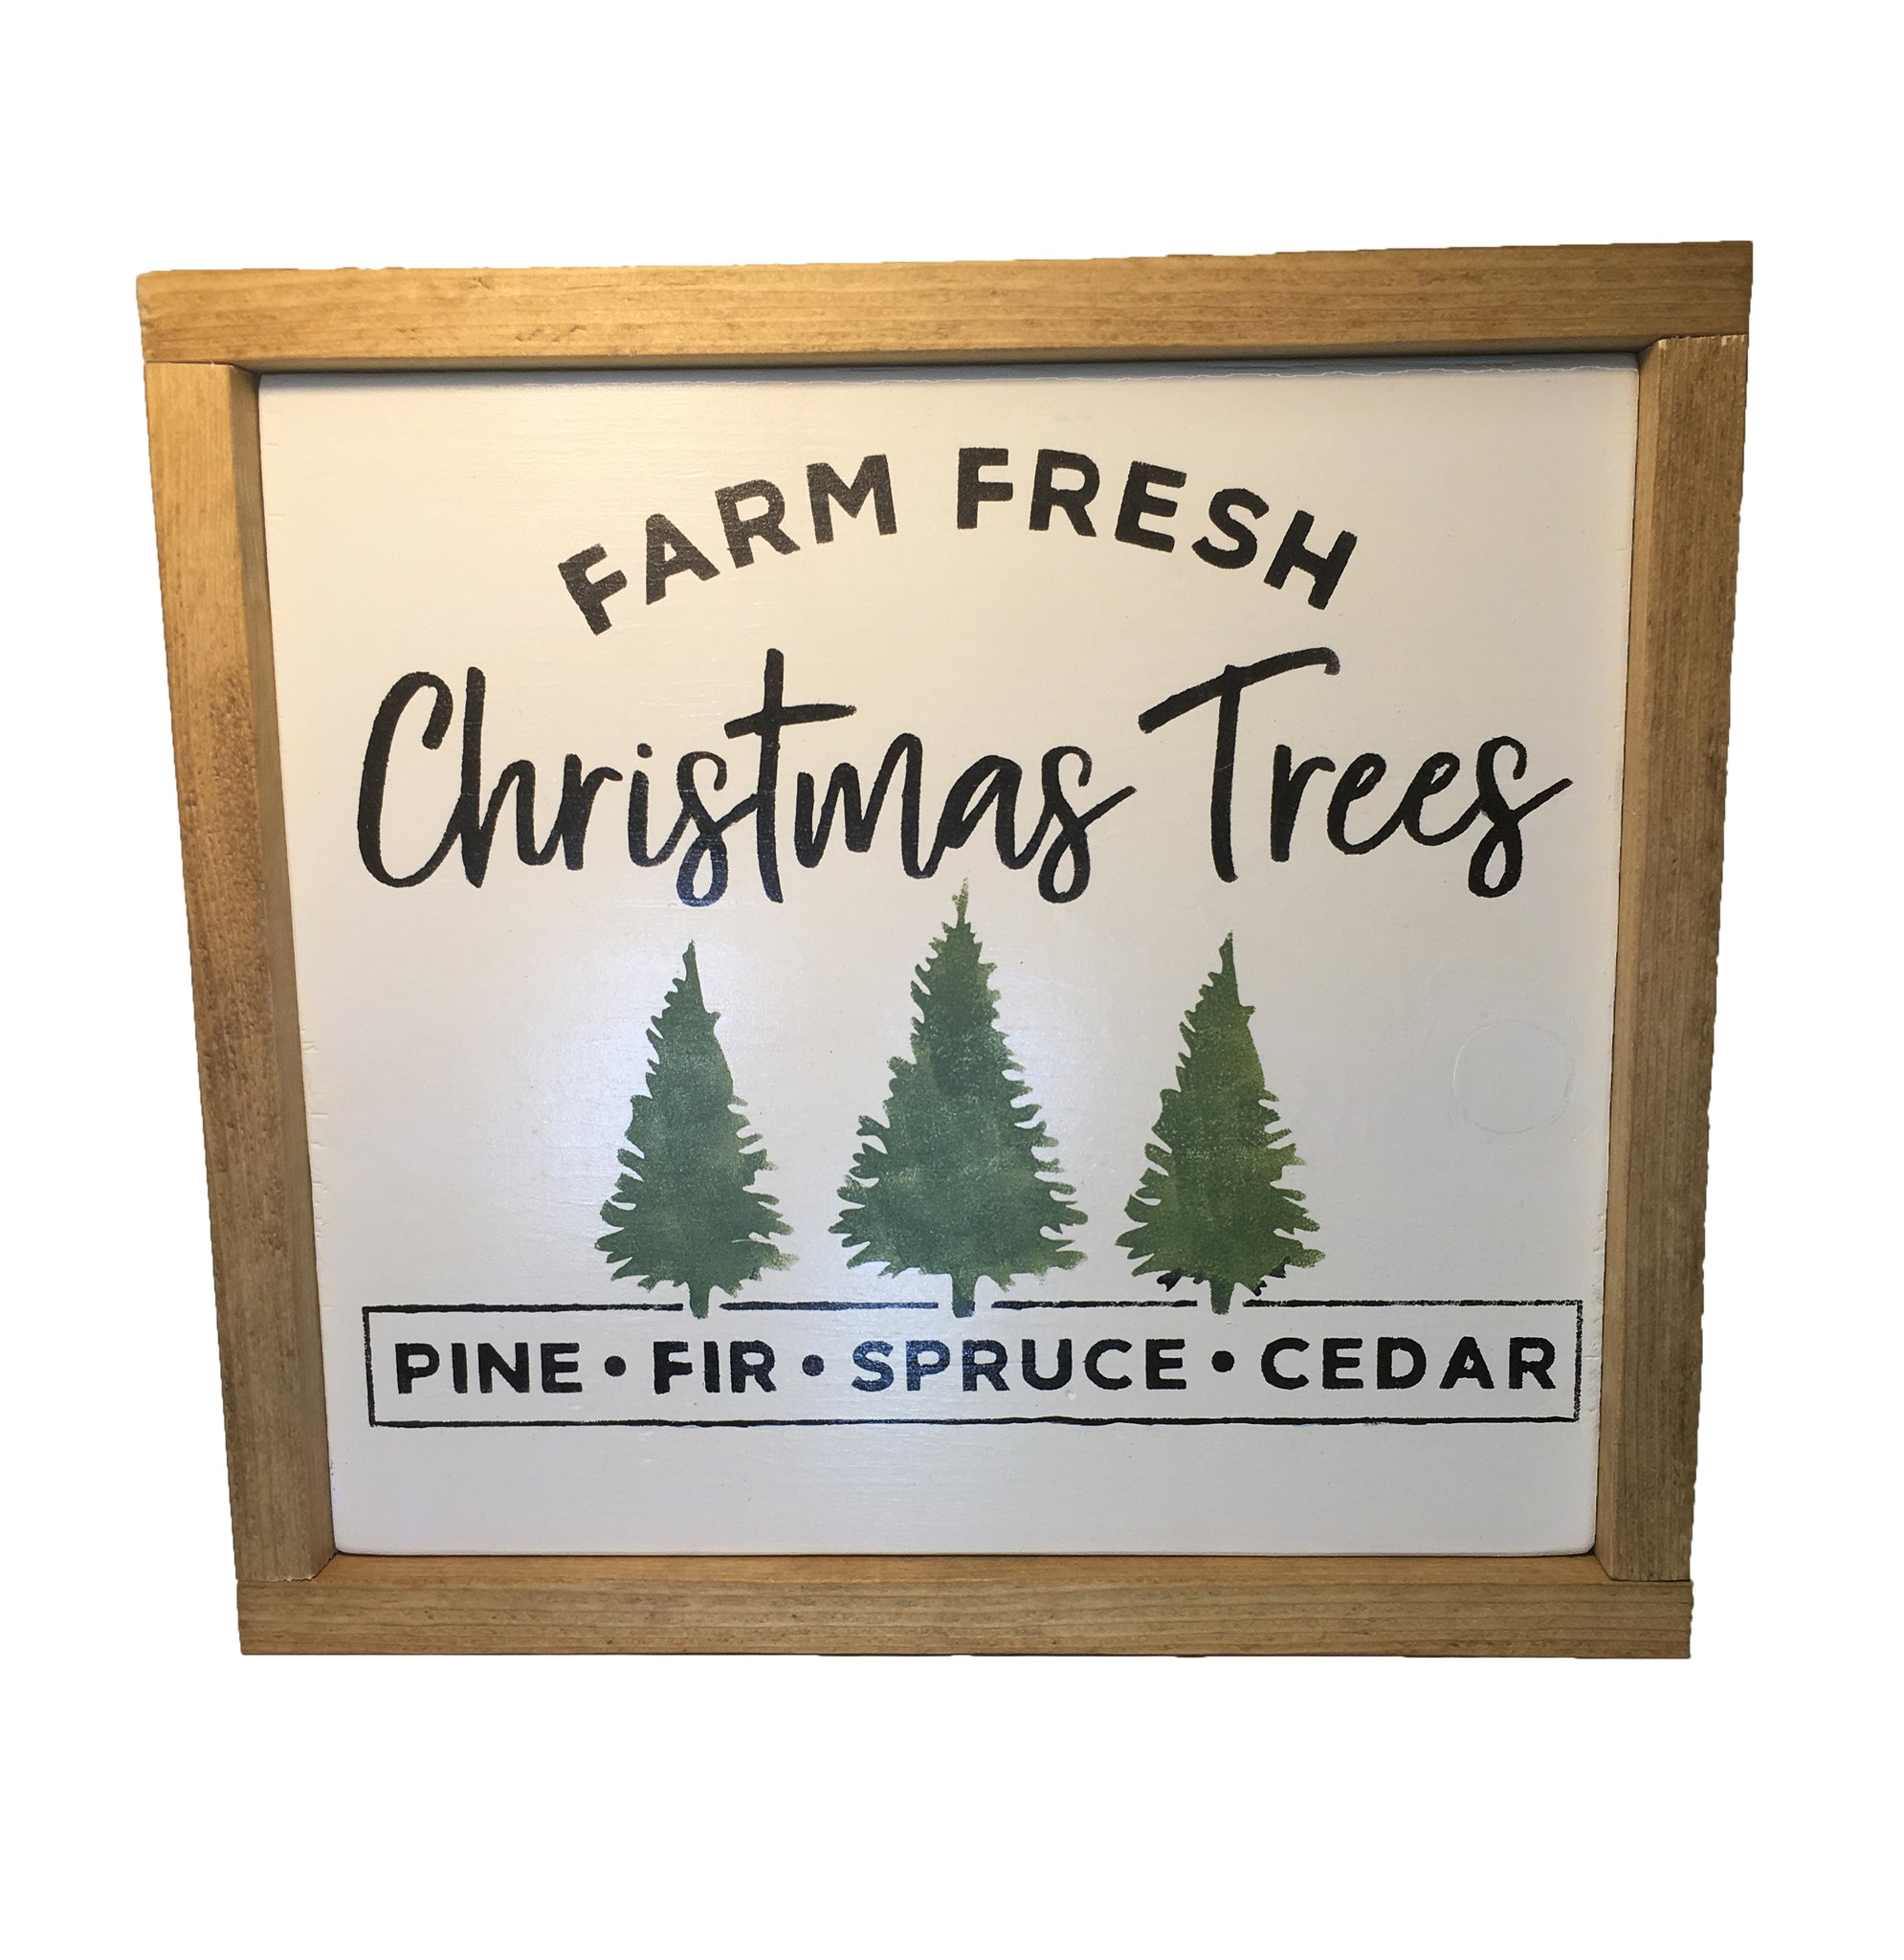 Rustic Farmhouse Christmas Trees for Sale Sign - Christmas decor - Northwoods Decor